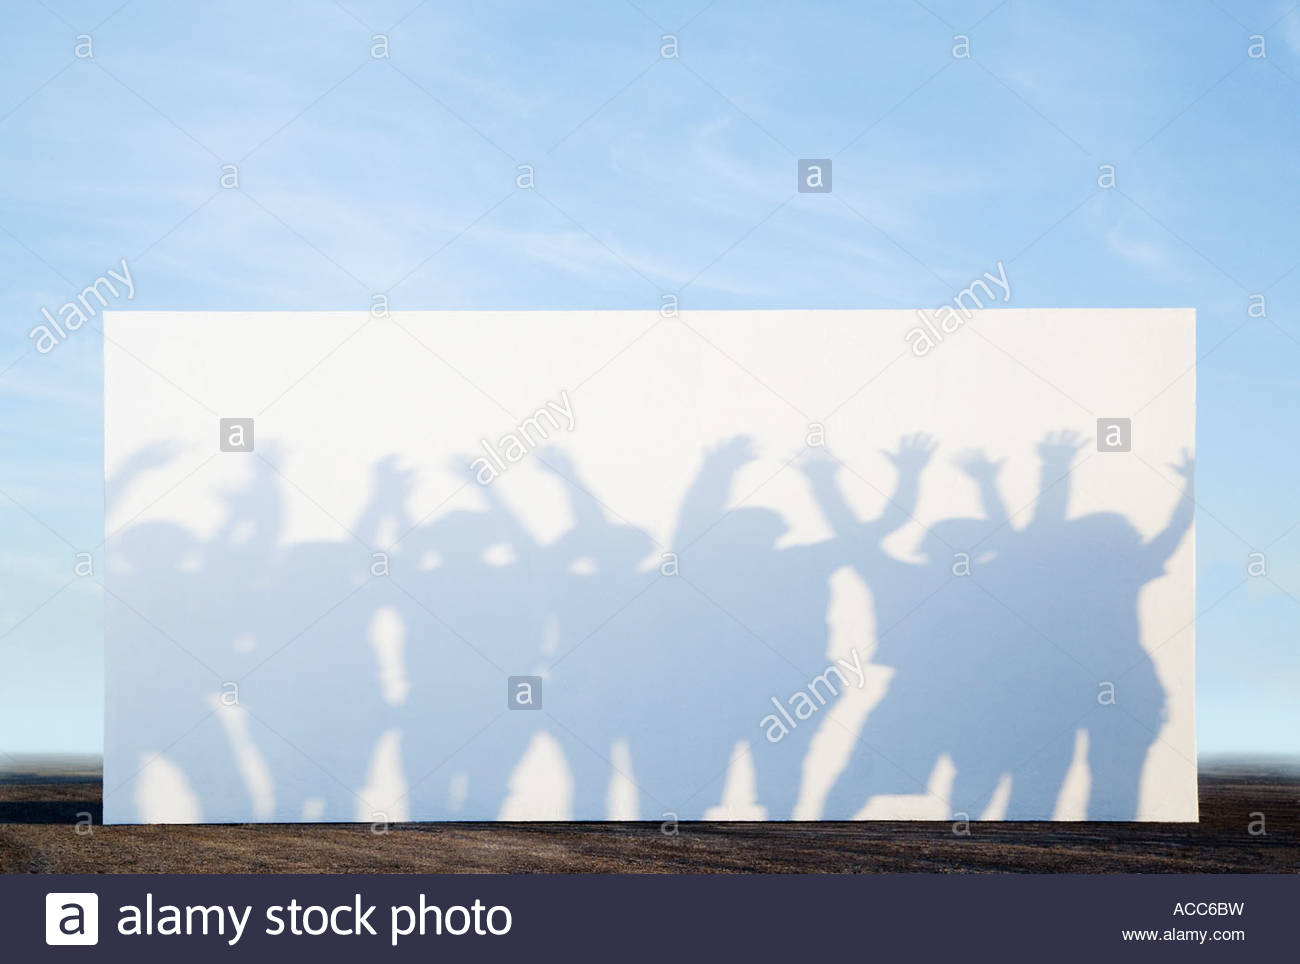 Silhouette shadows of people on a billboard - Stock Image